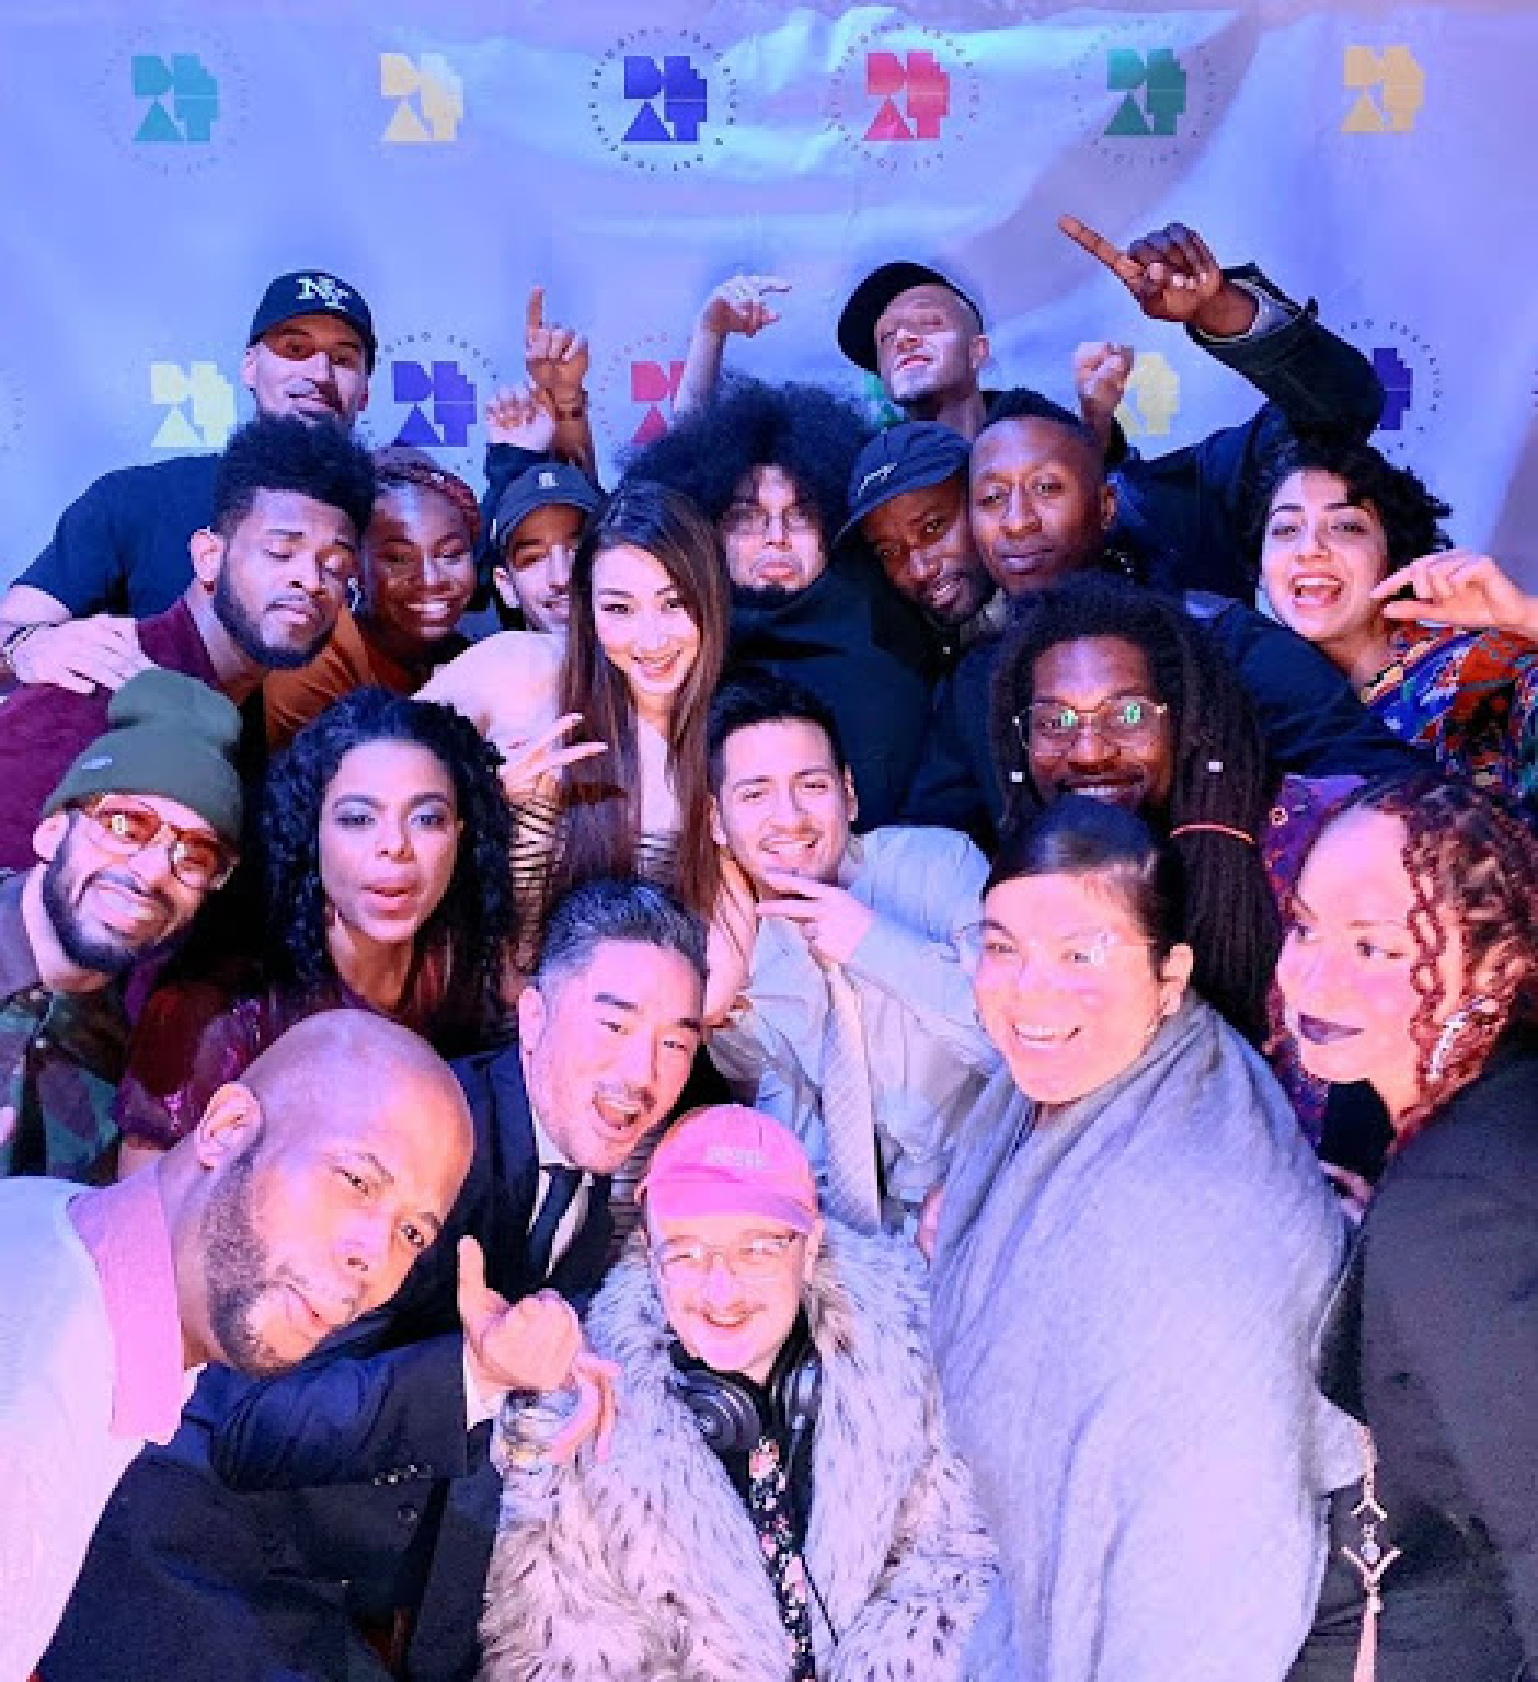 Group selfie of BEAT staff and Teaching Artists from BEAT Birthday Bash in 2019.